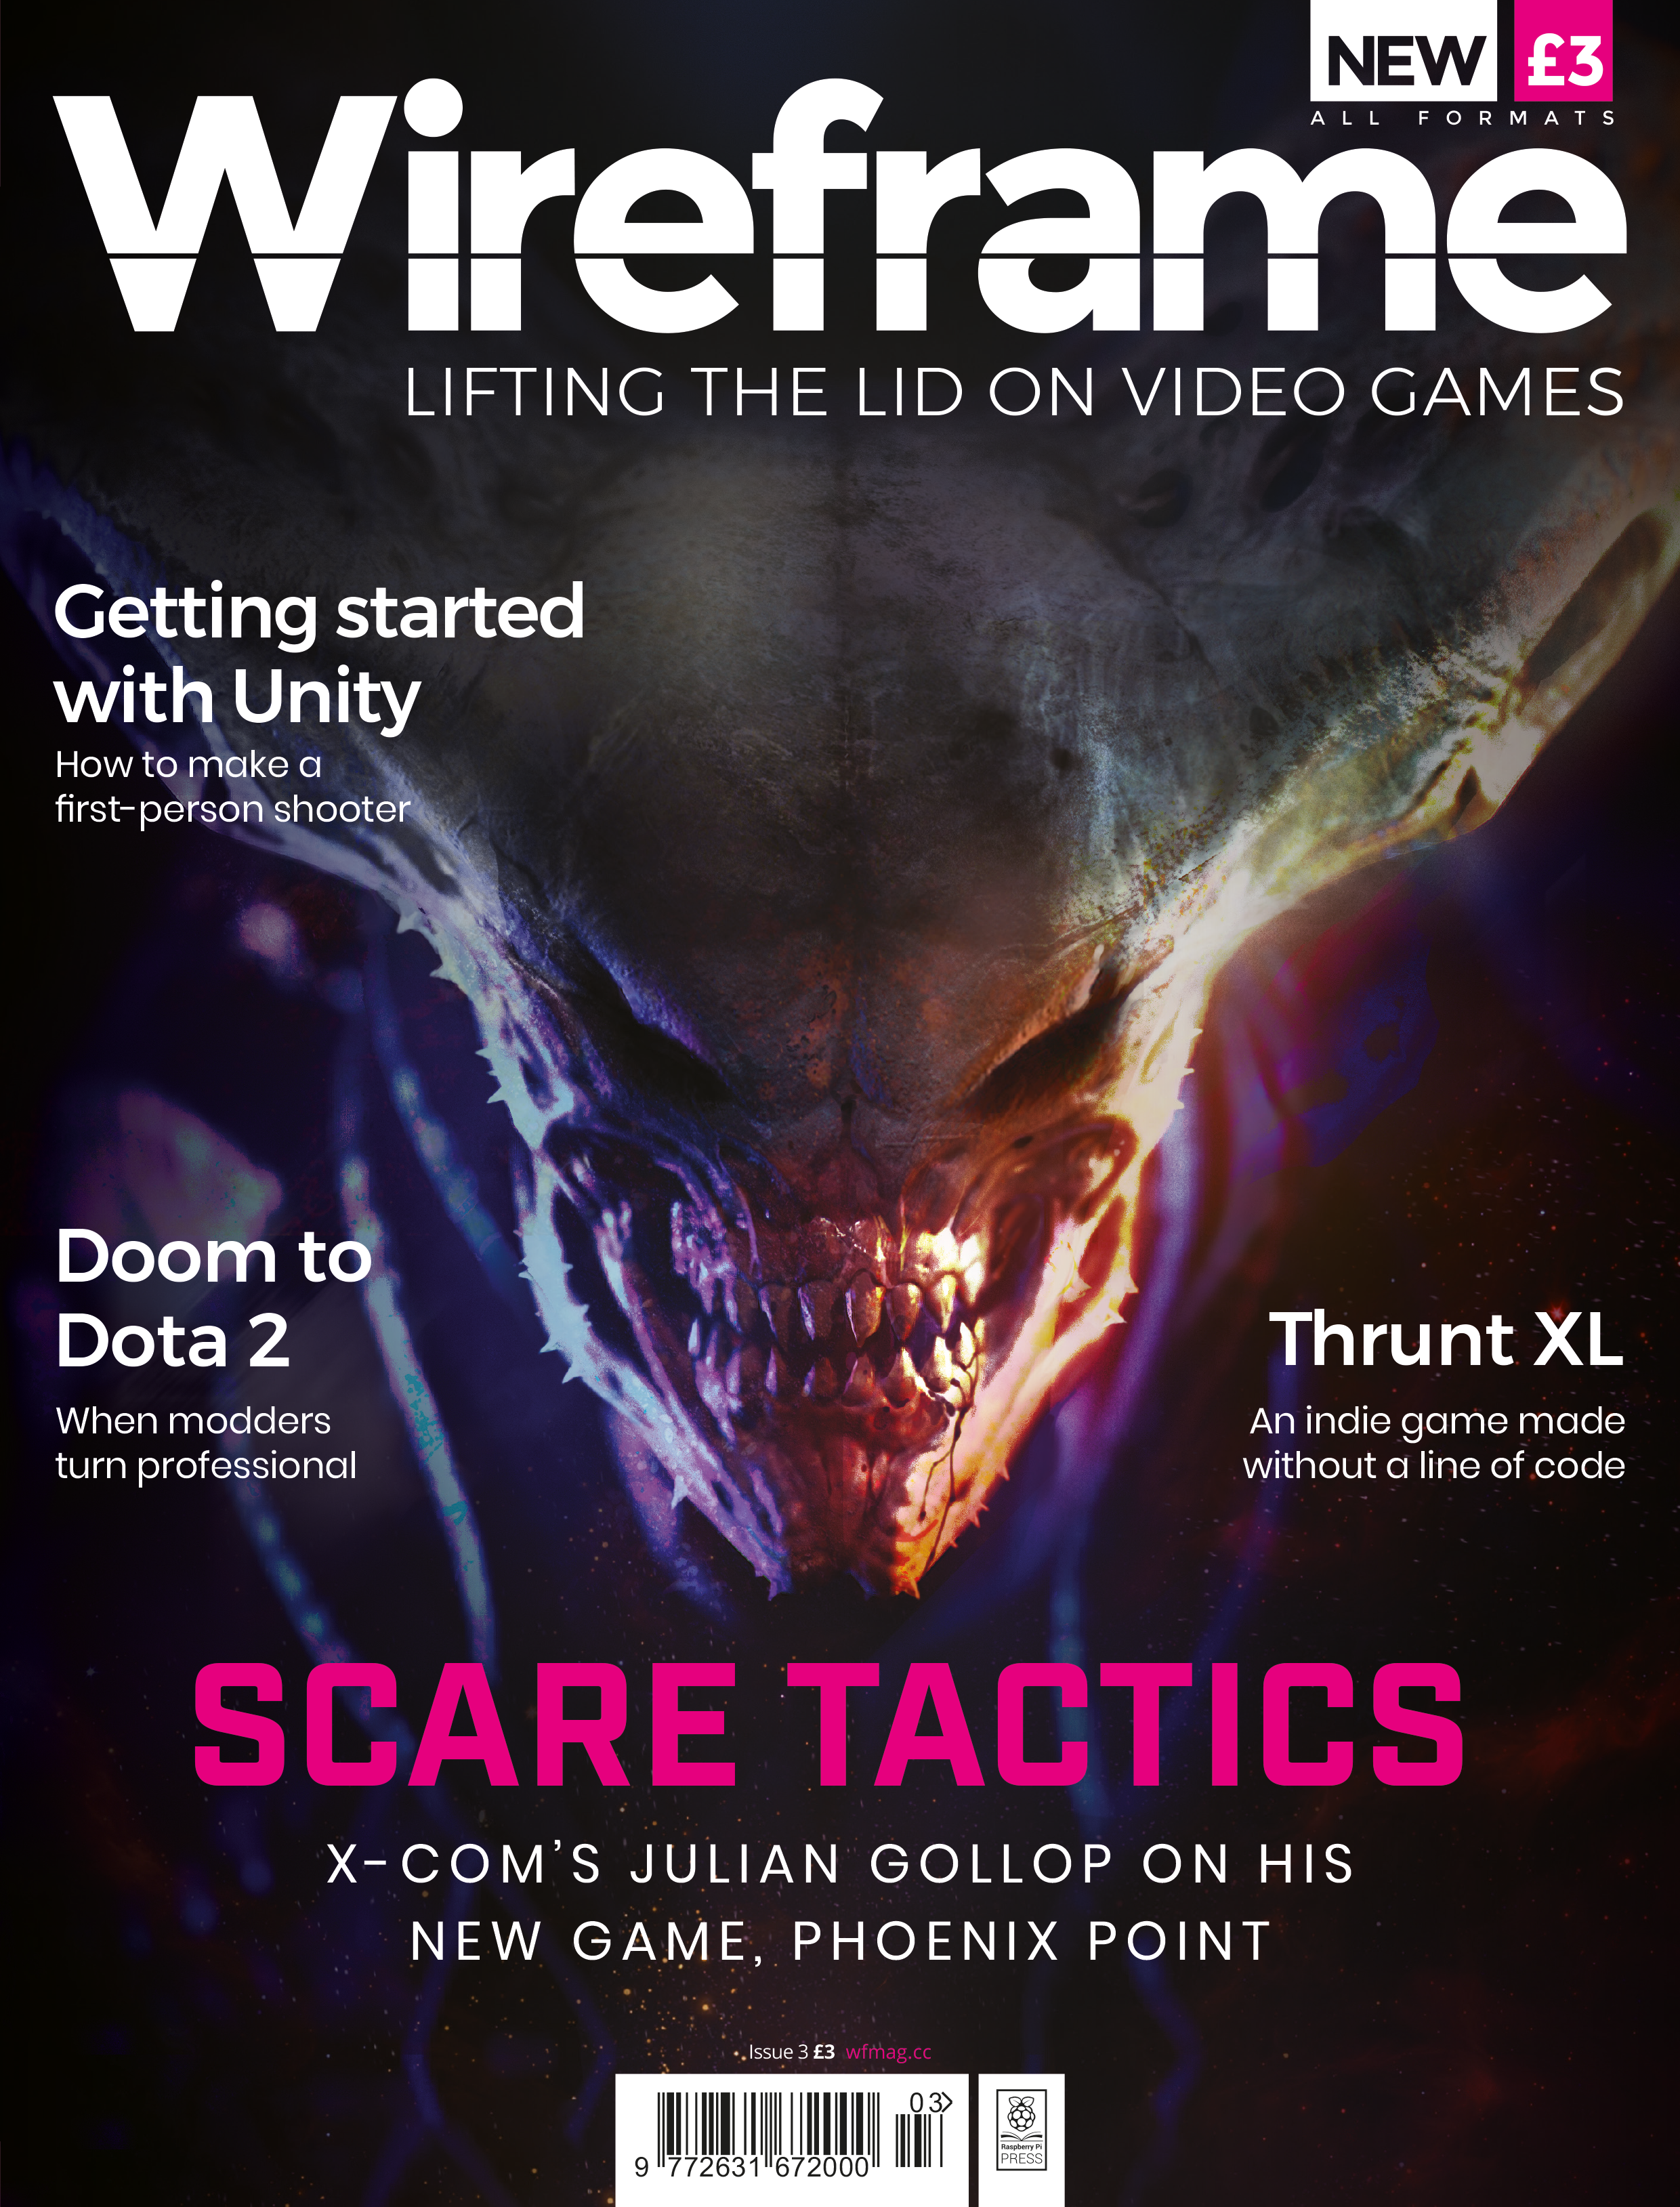 Wireframe 3: Phoenix Point, modders going pro, and more